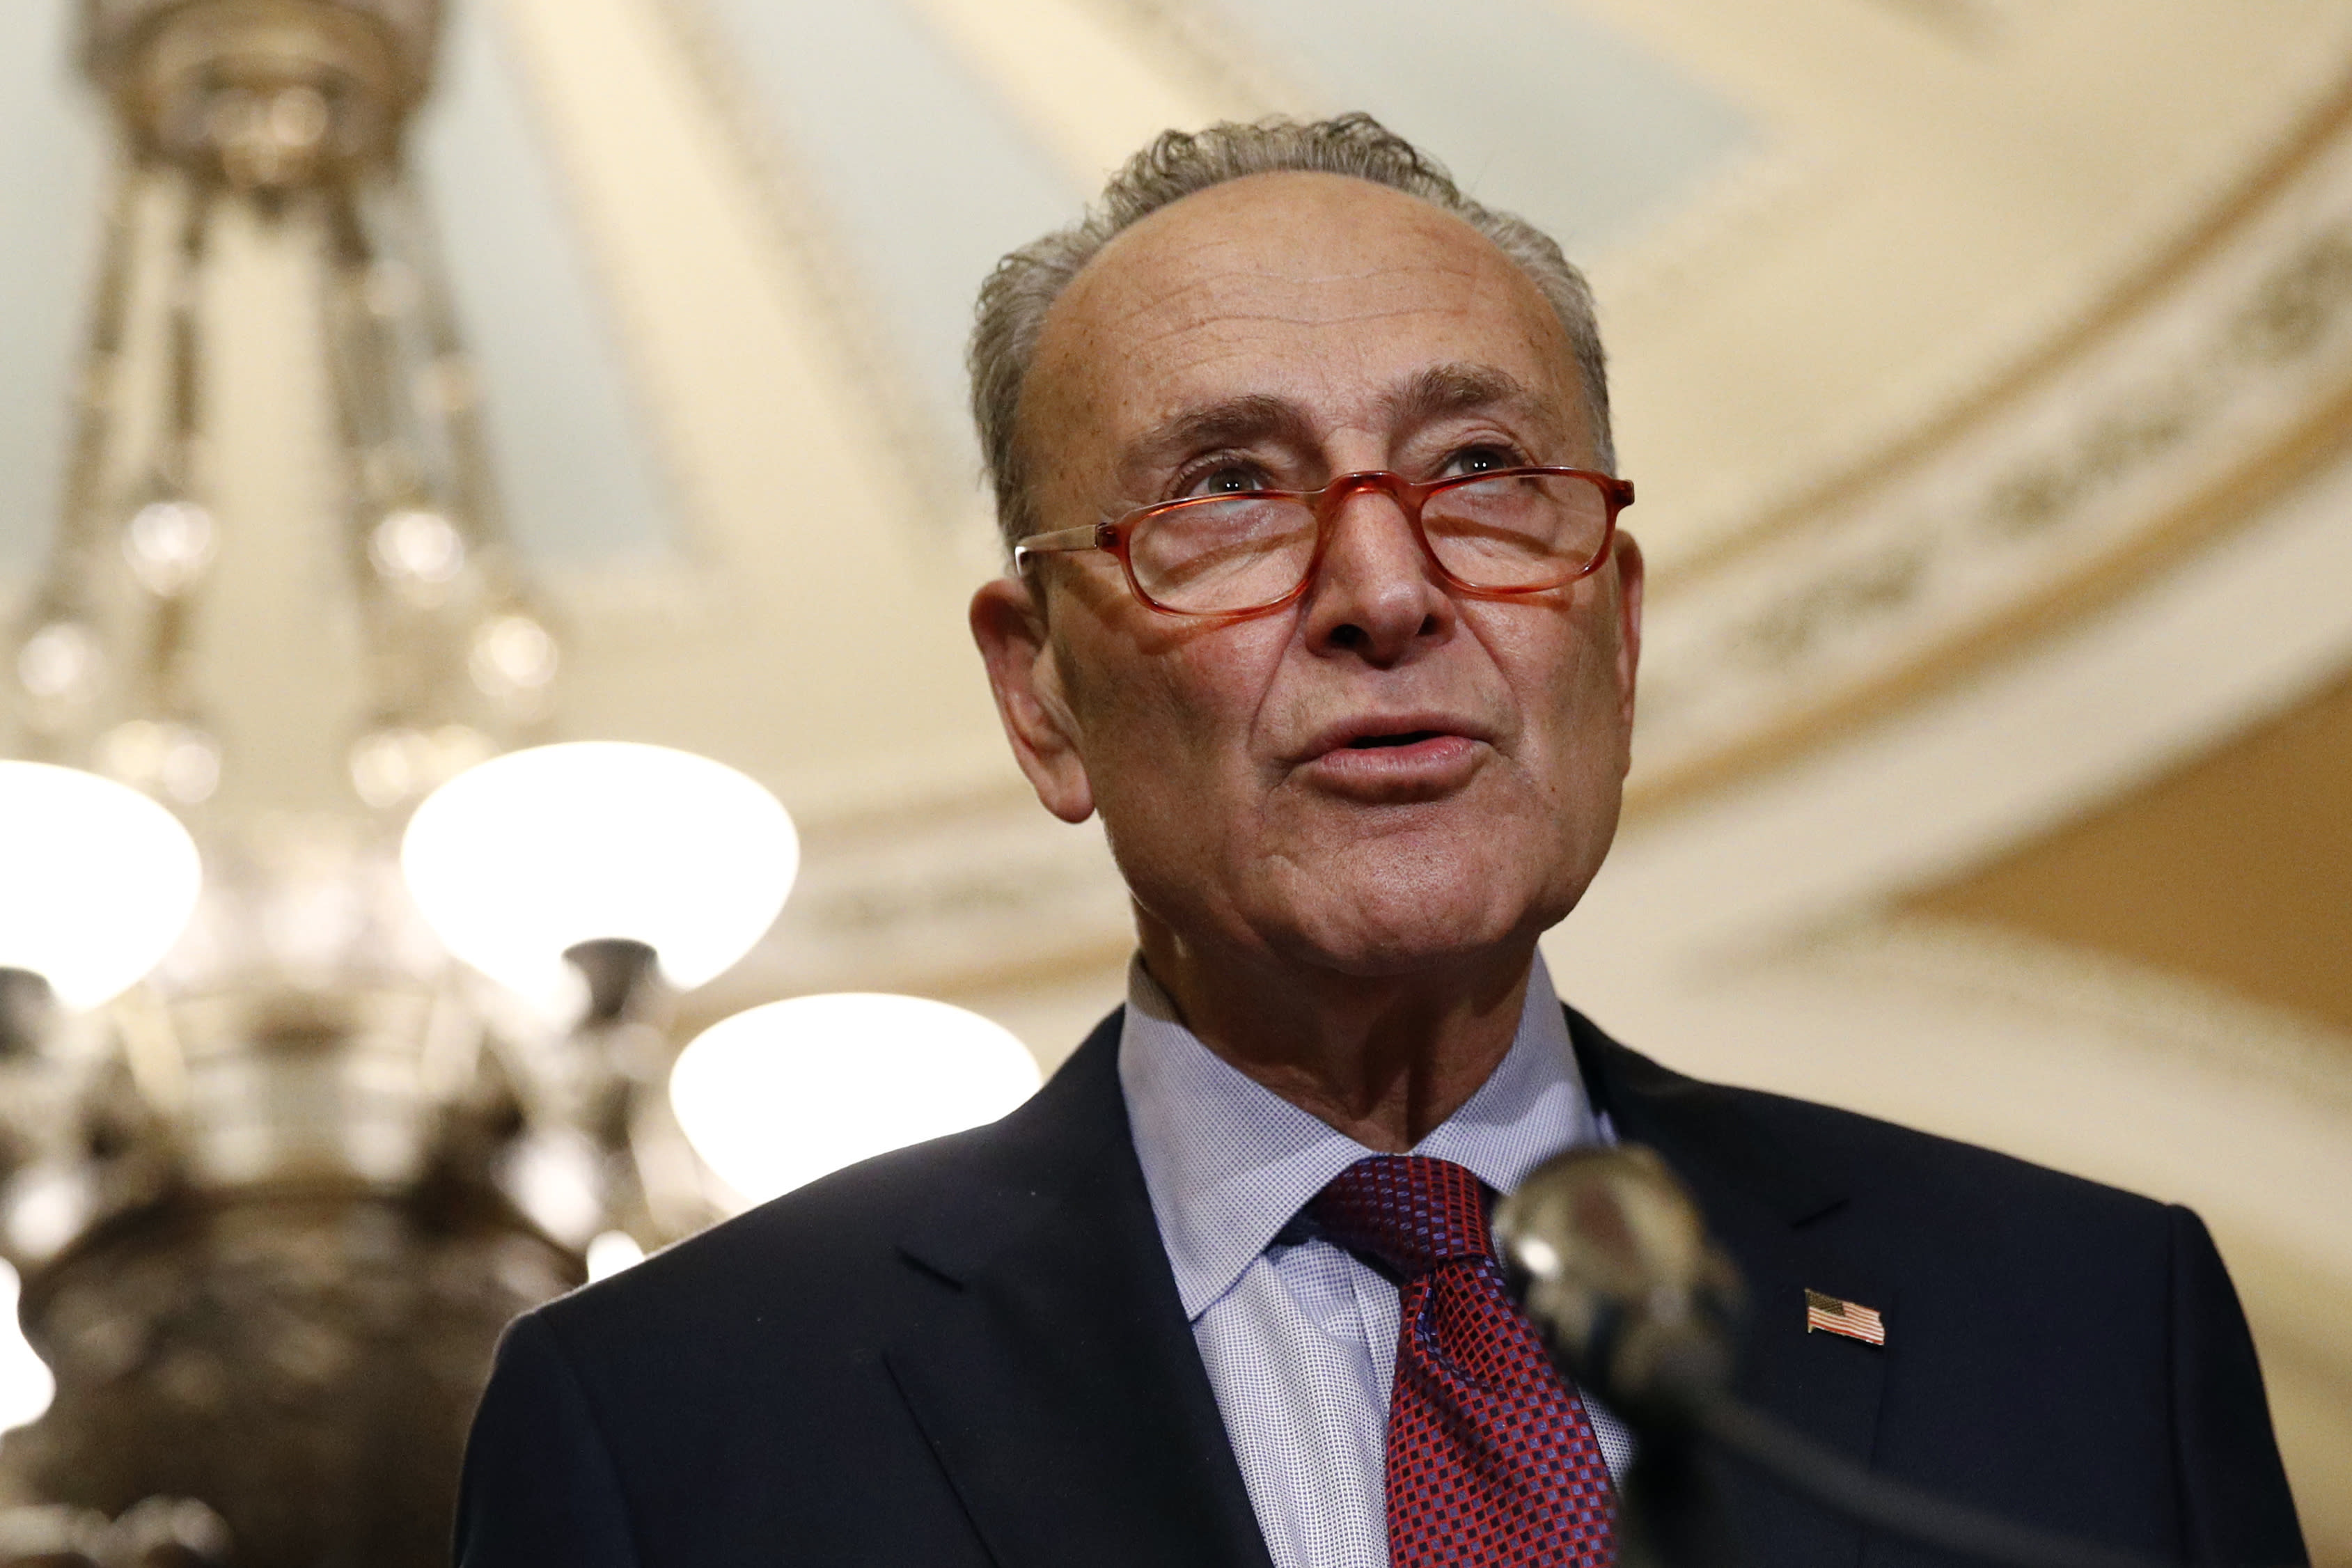 Schumer Proposes $462B Program to Boost Electric Cars